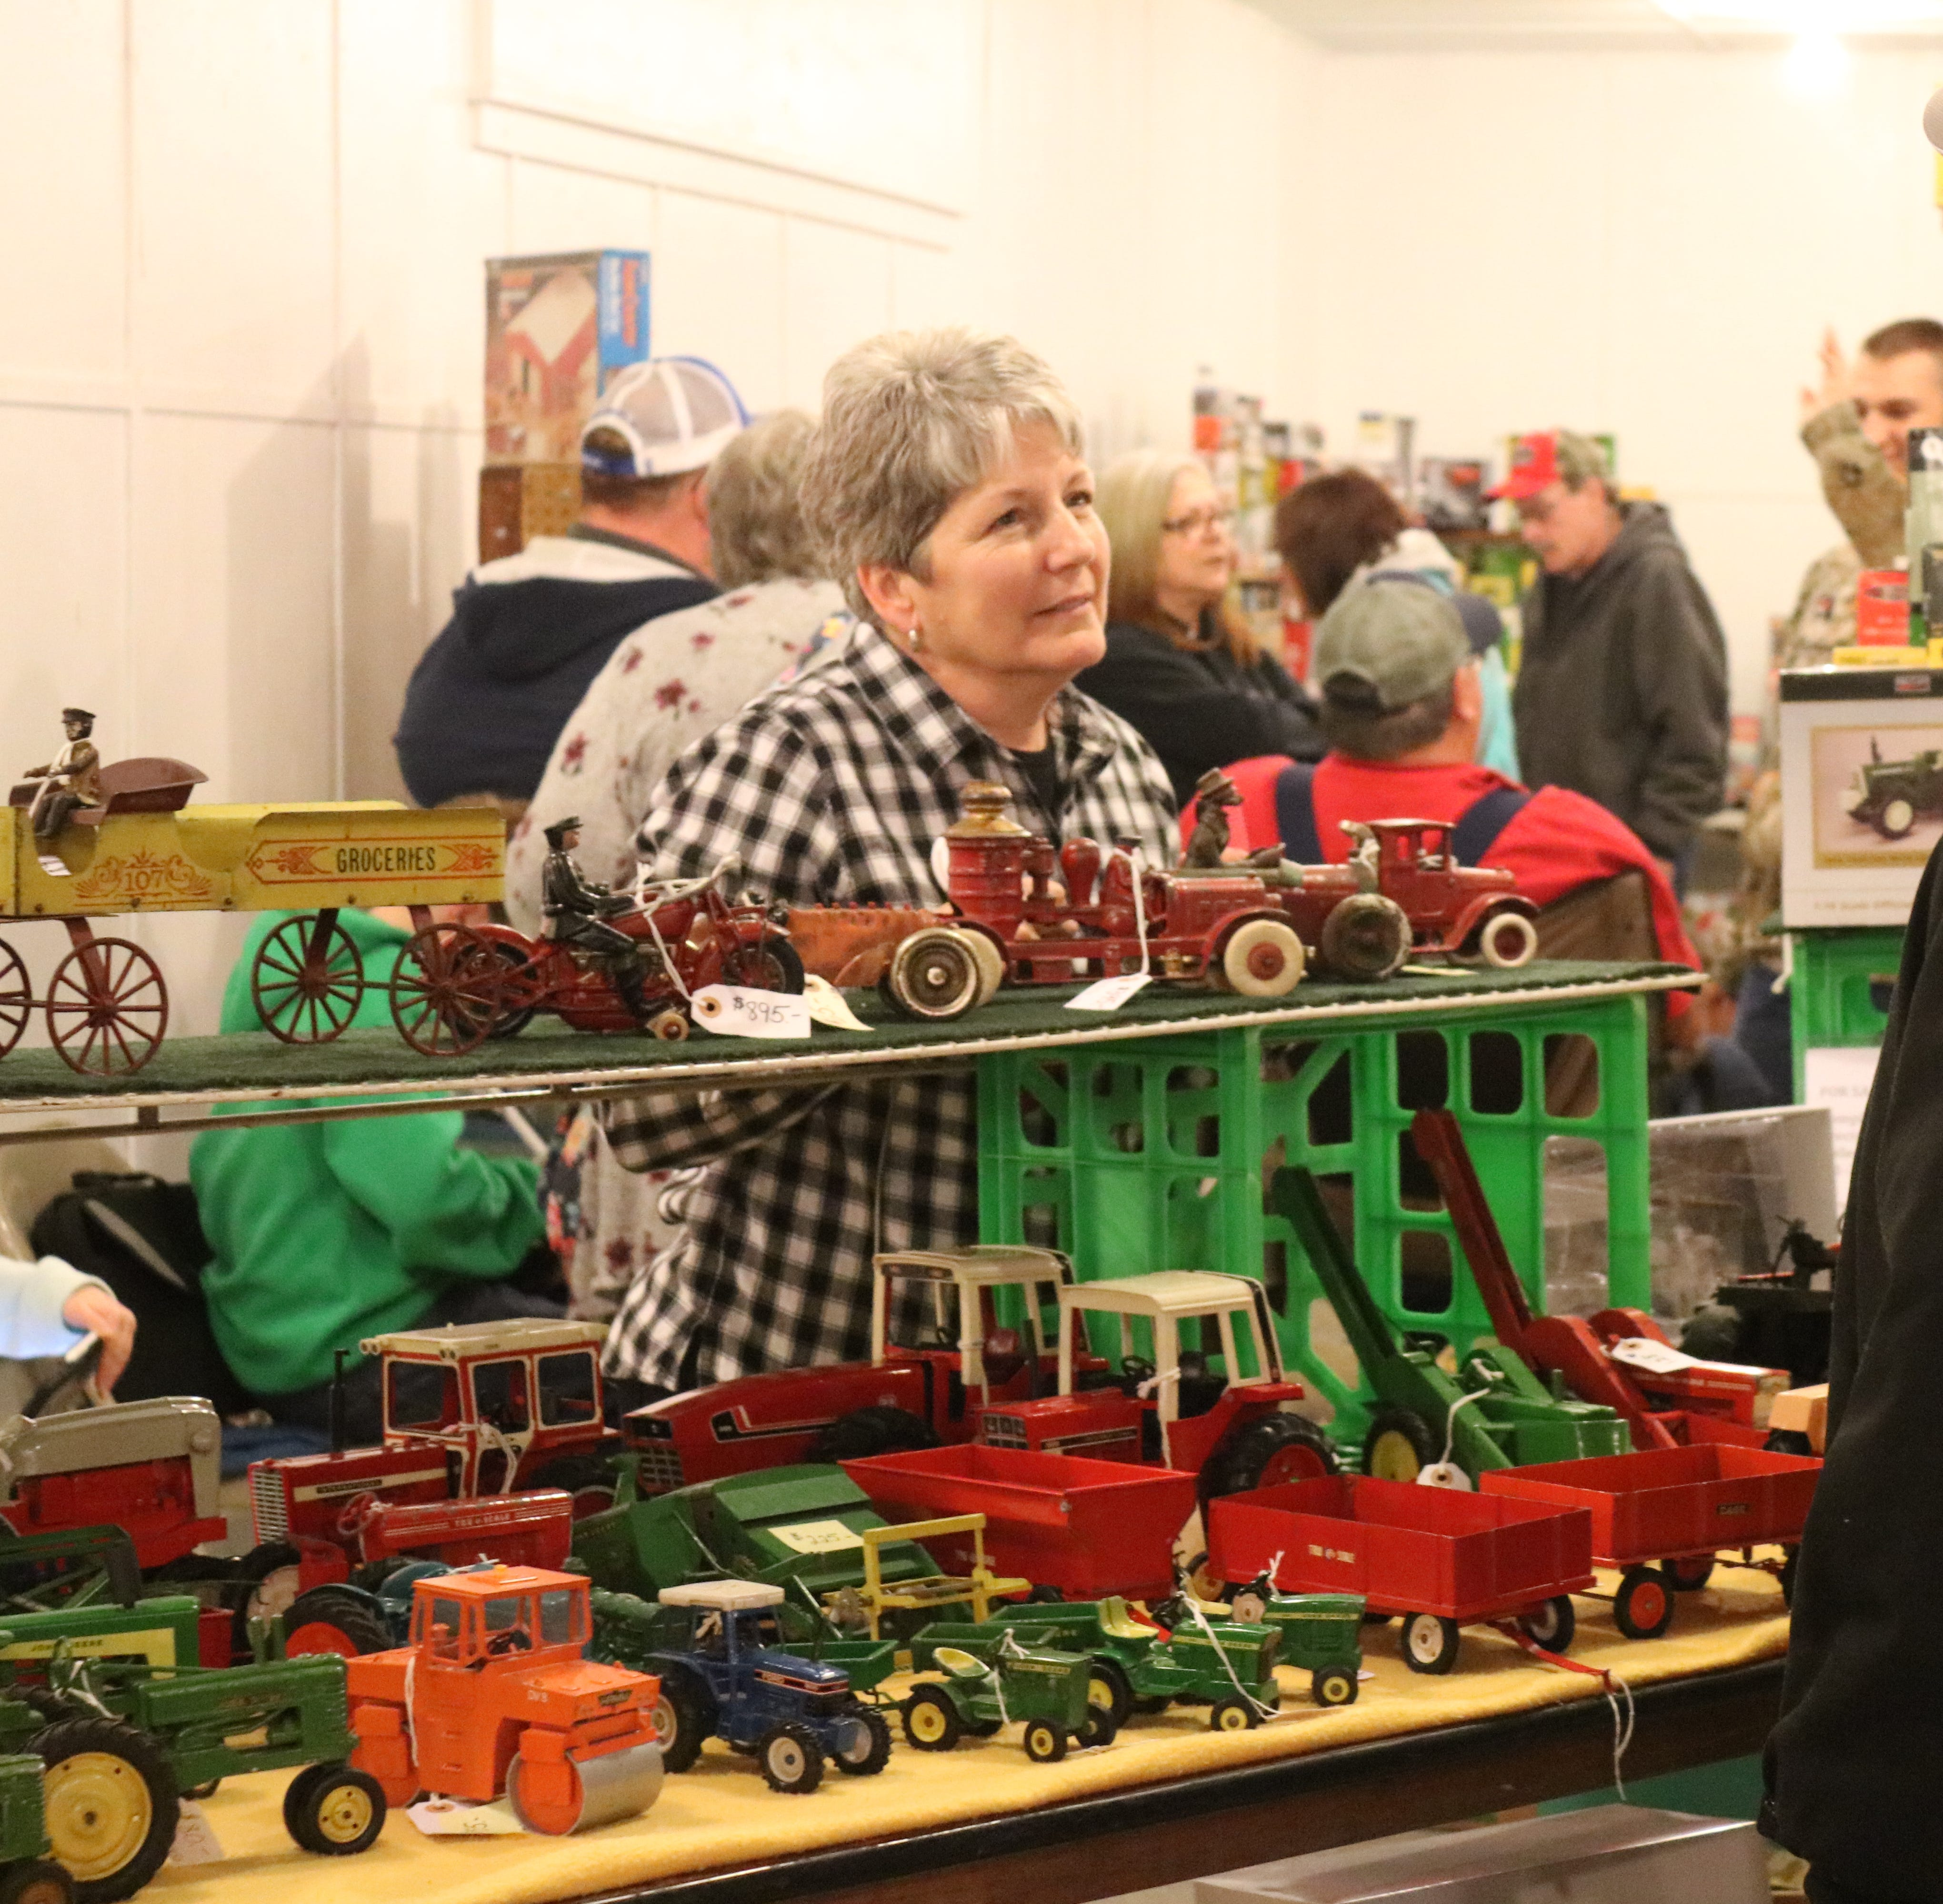 Both old timers and new visitors embrace Fremont Toy Show